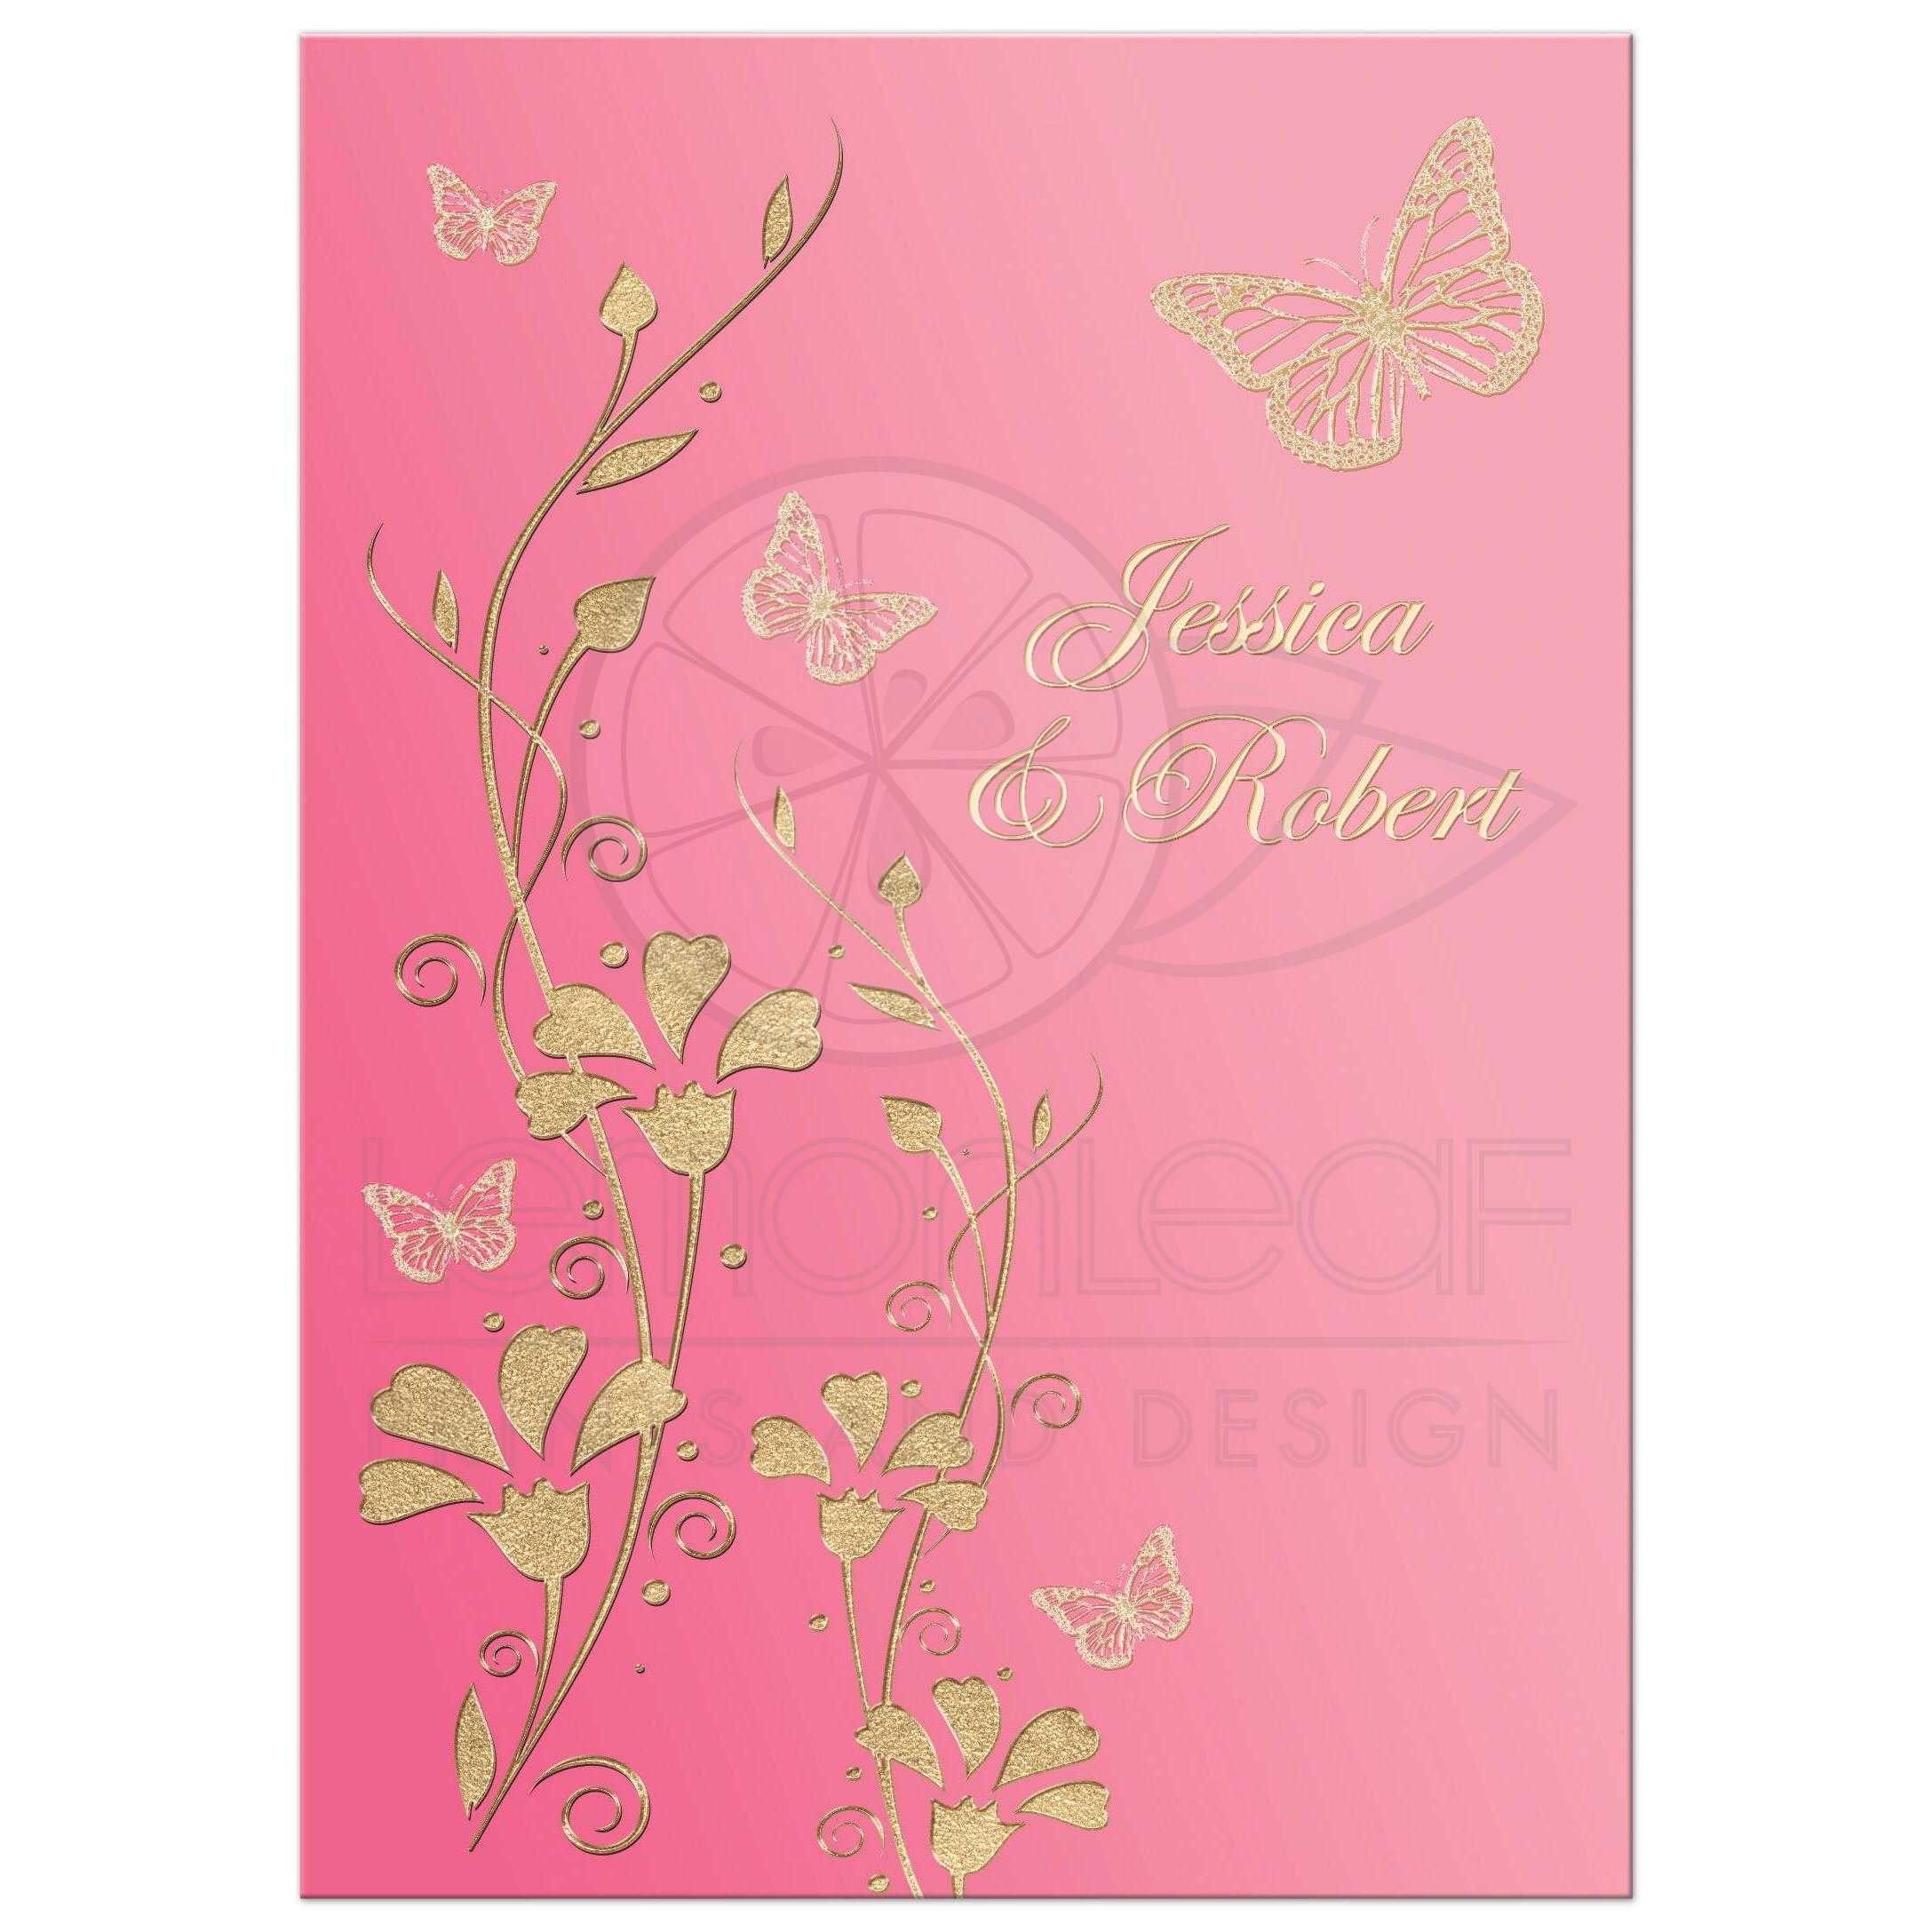 Great Fuchsia Blush Pink Champagne And Gold Fl Wedding Invitation With Flowers Erflies